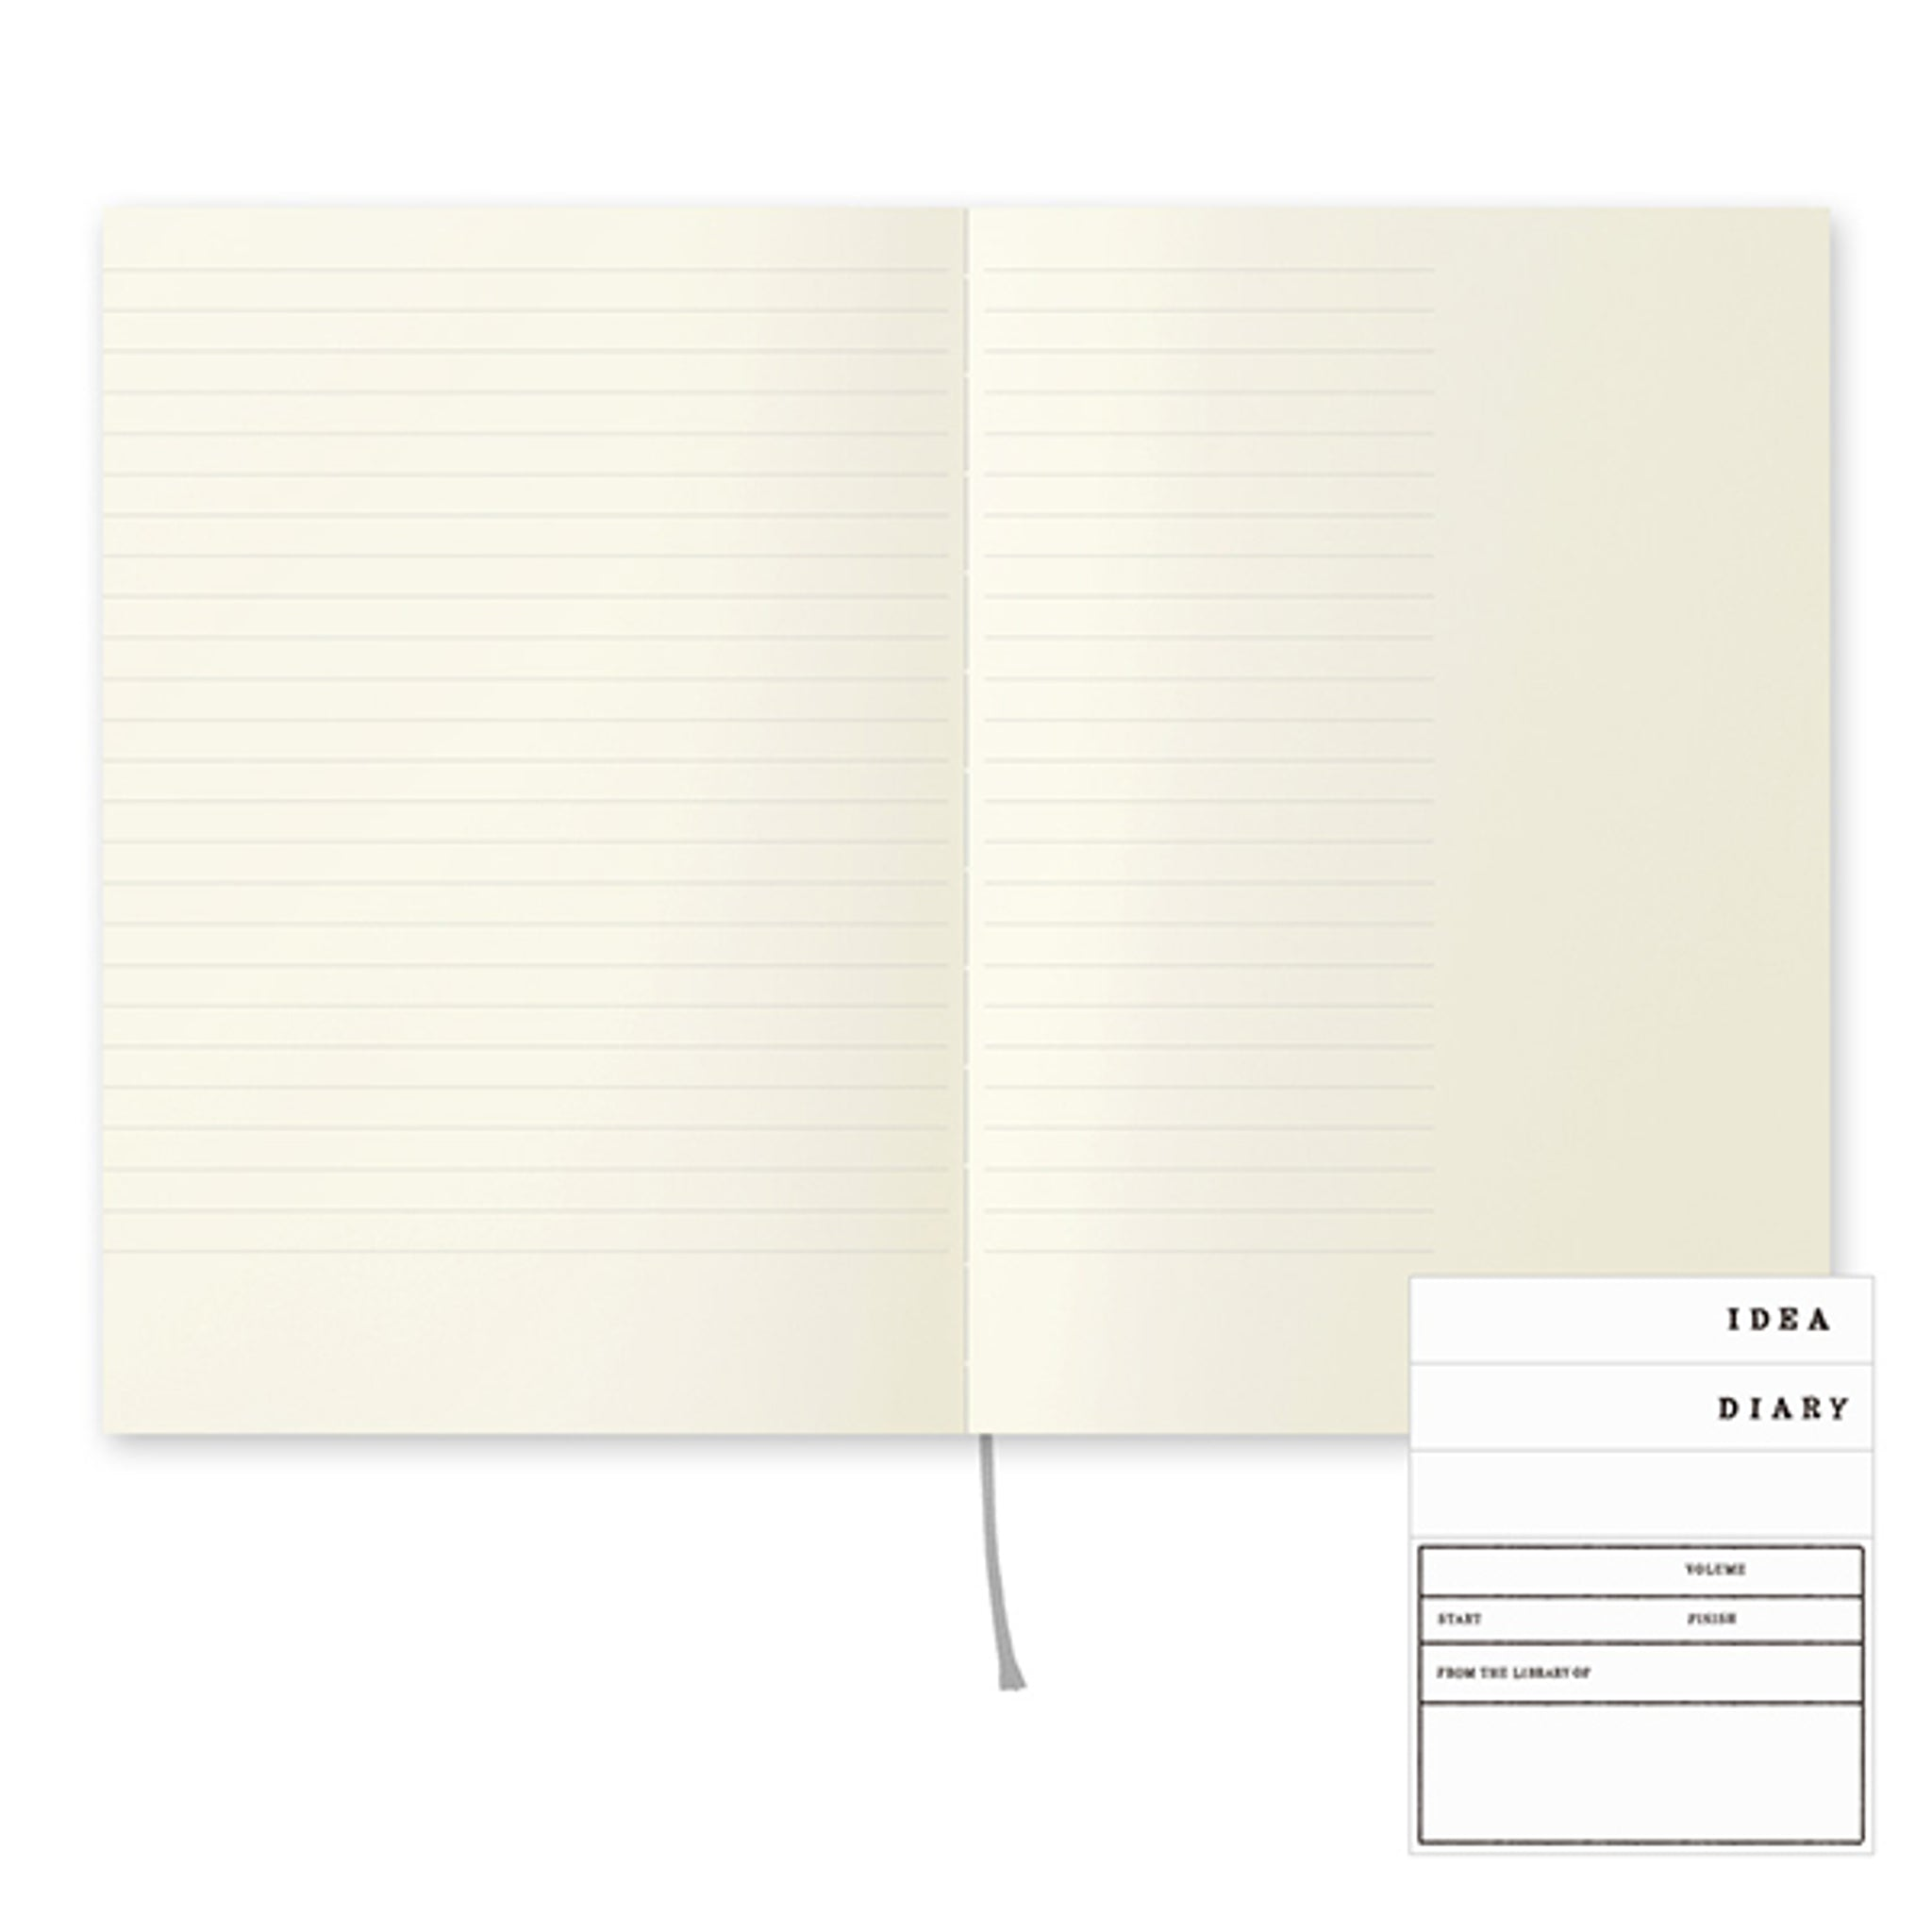 MD Notebook [A5] 10th Anniversary Lined with Margin